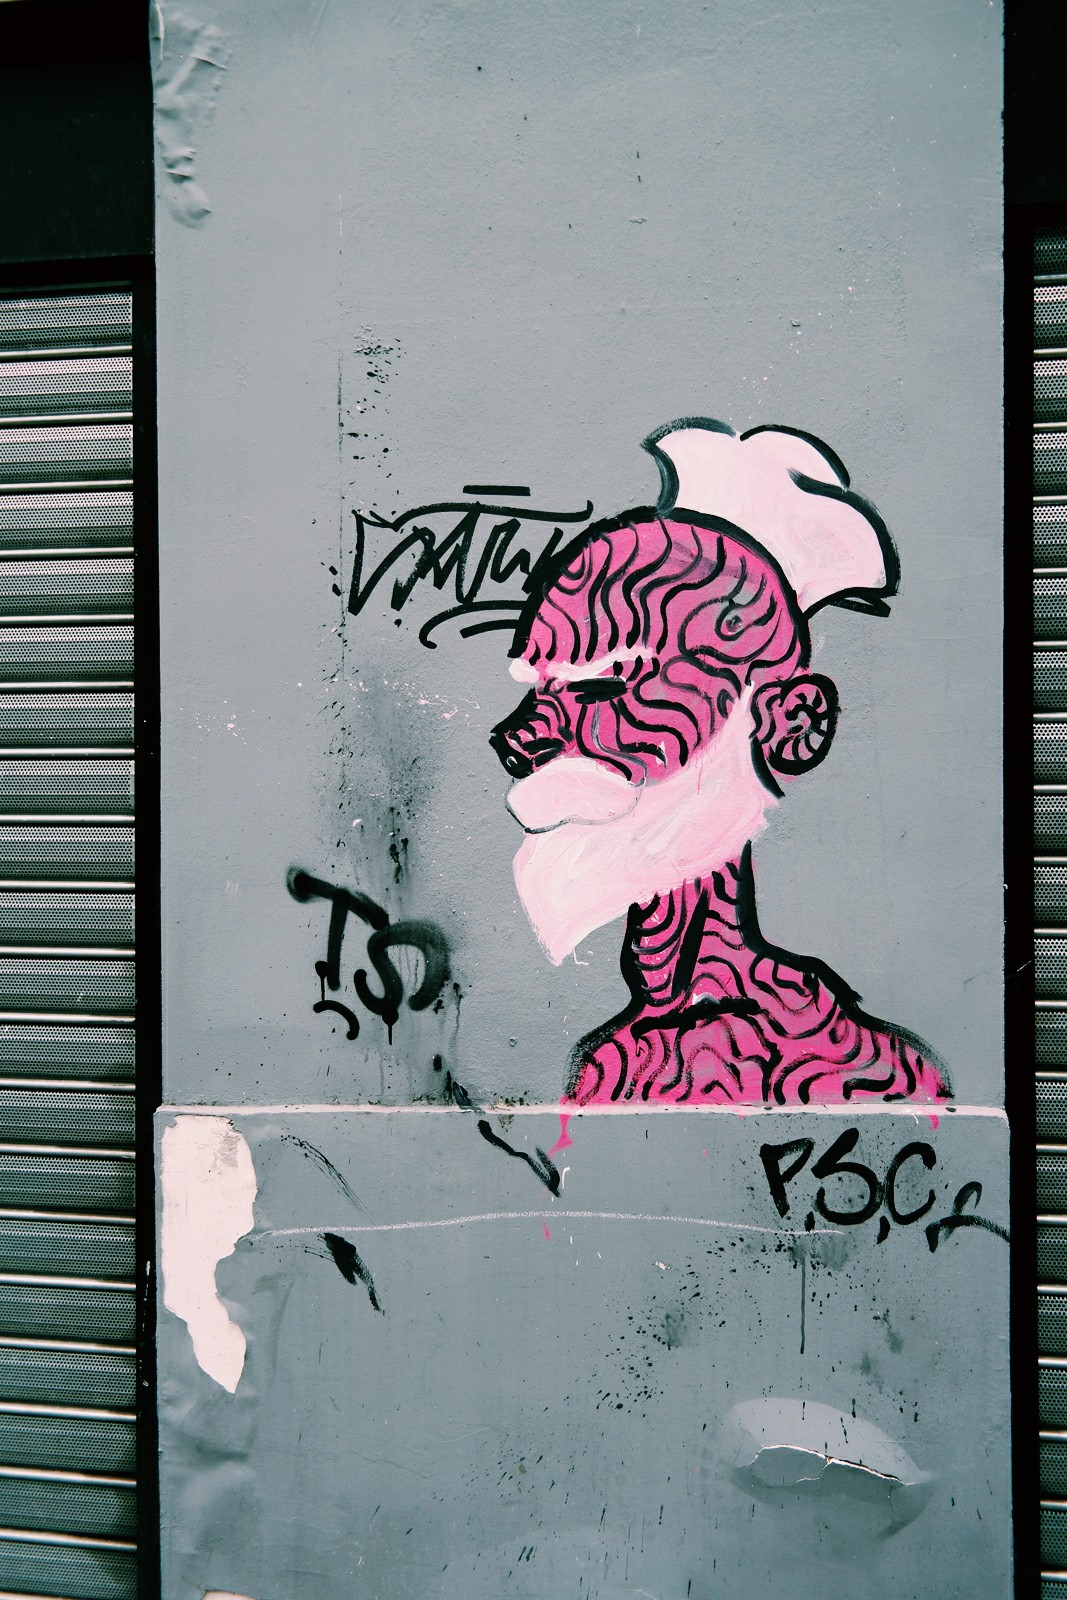 Pink-French-Sailor-by-Paris-Sketch-Culture-Raphael-Federici-graffiti-street-art-wall-street-photography-by-United-States-of-Paris-blog